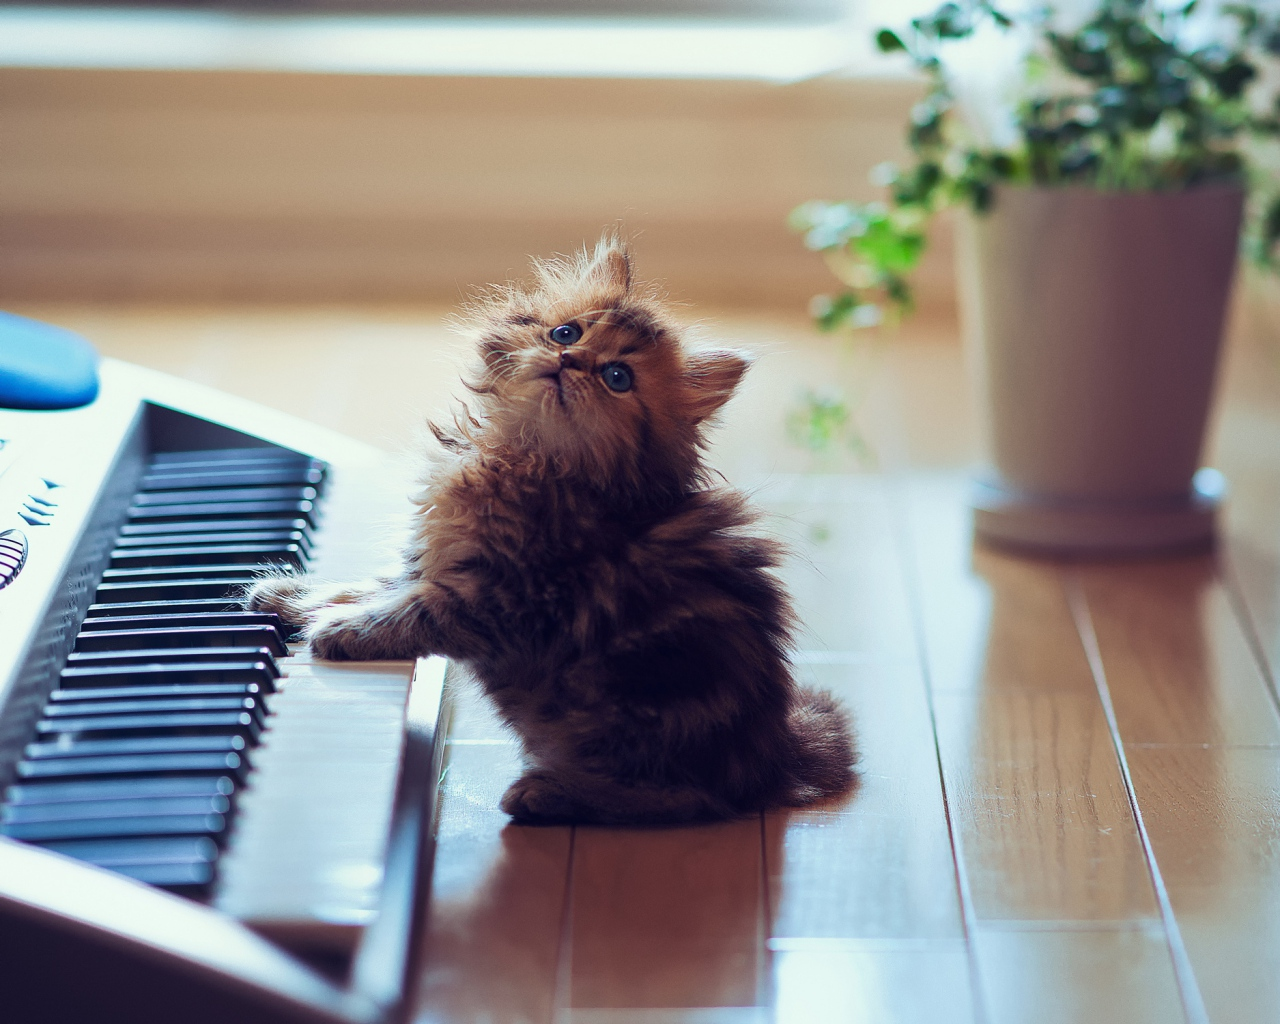 kitty_fluffy_floors_keyboards_synthesizer_sit_playful_53339_1280x1024